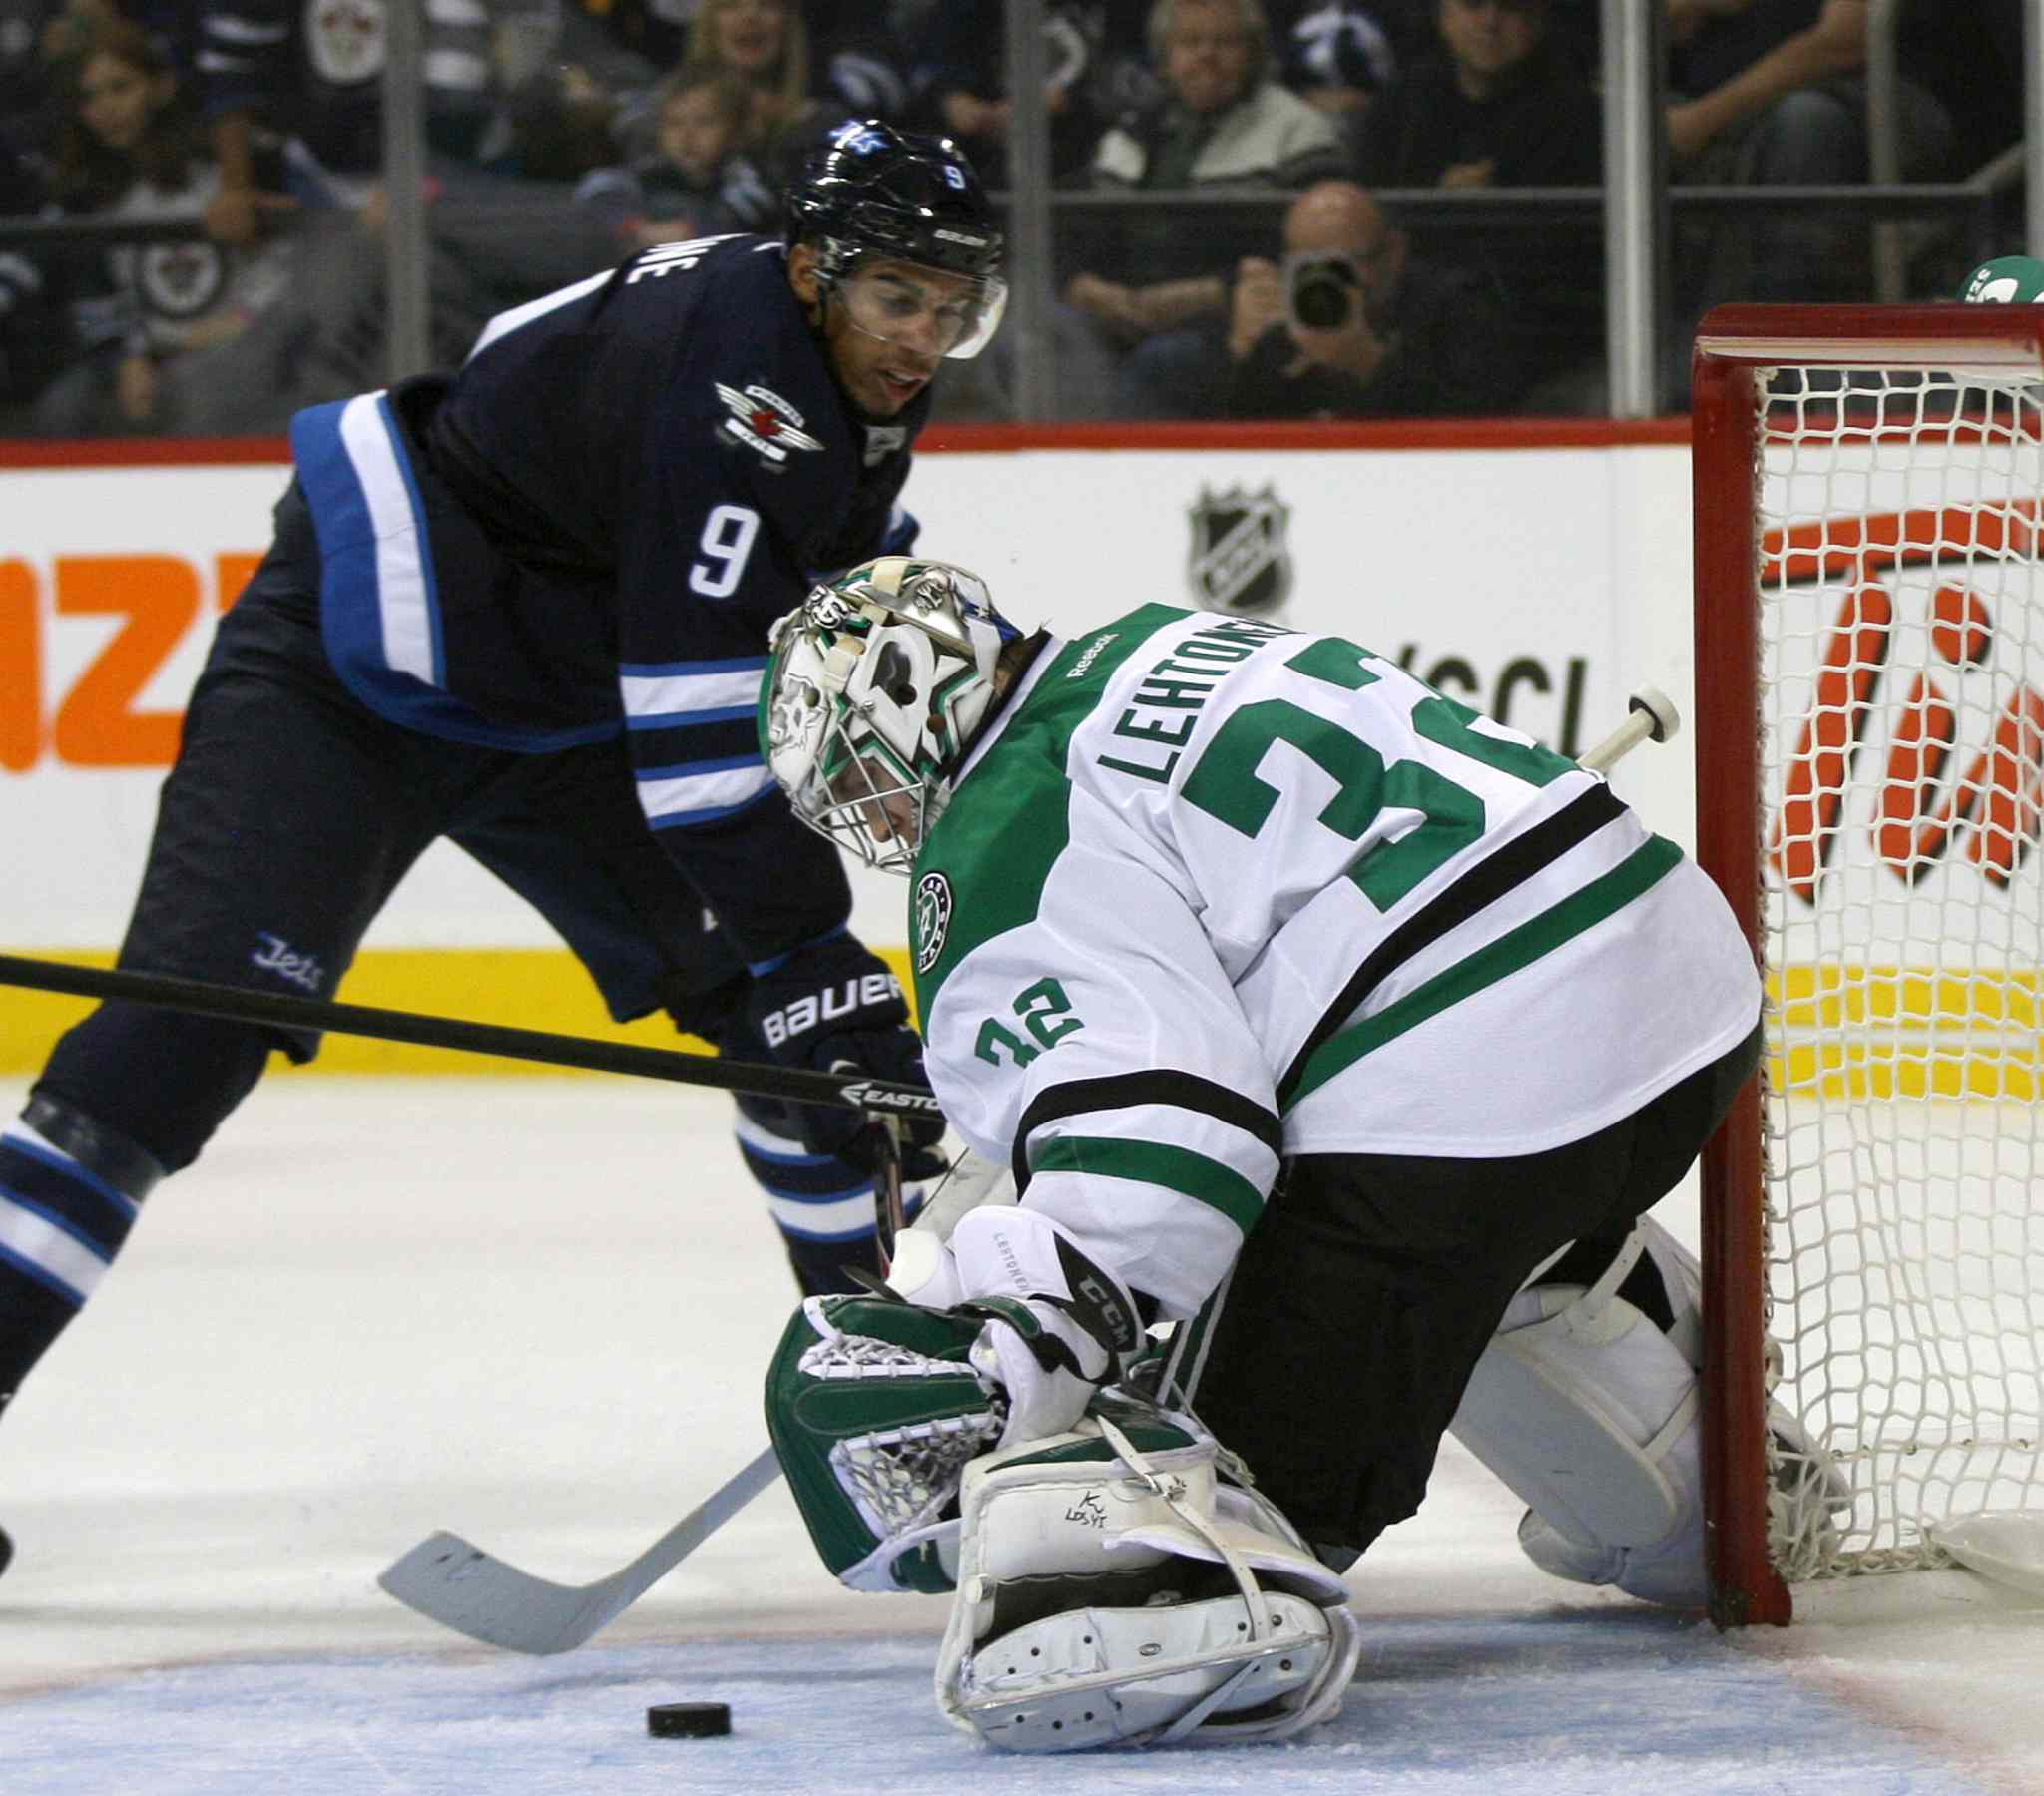 Evander Kane gets a shot on Dallas Stars goaltender Kari Lehtonen during the second period.